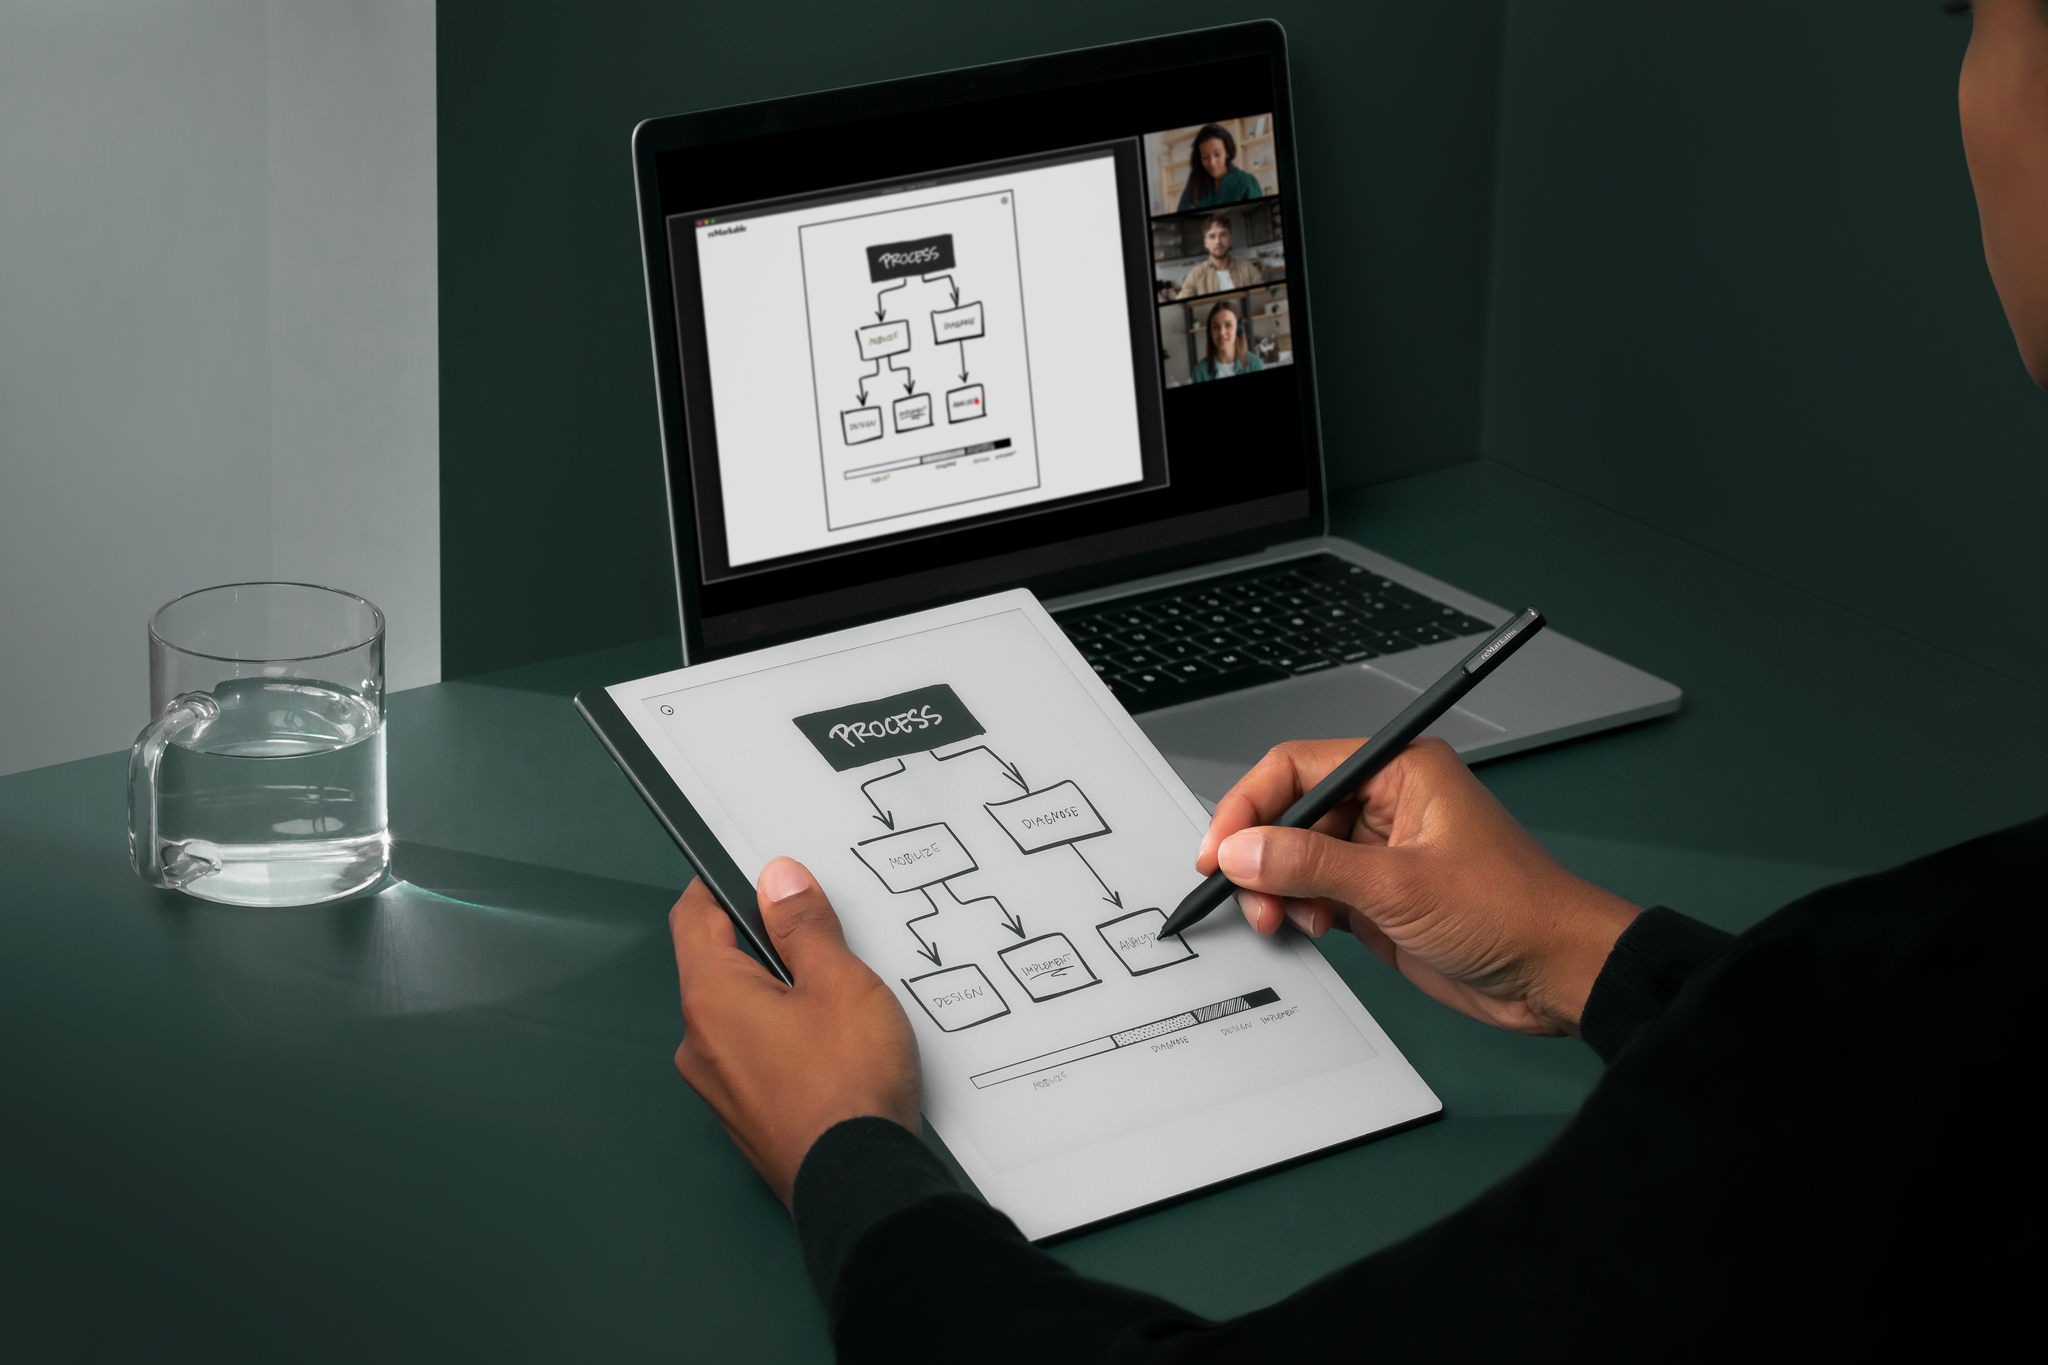 Write, draw, and demonstrate concepts live with Screen Share.